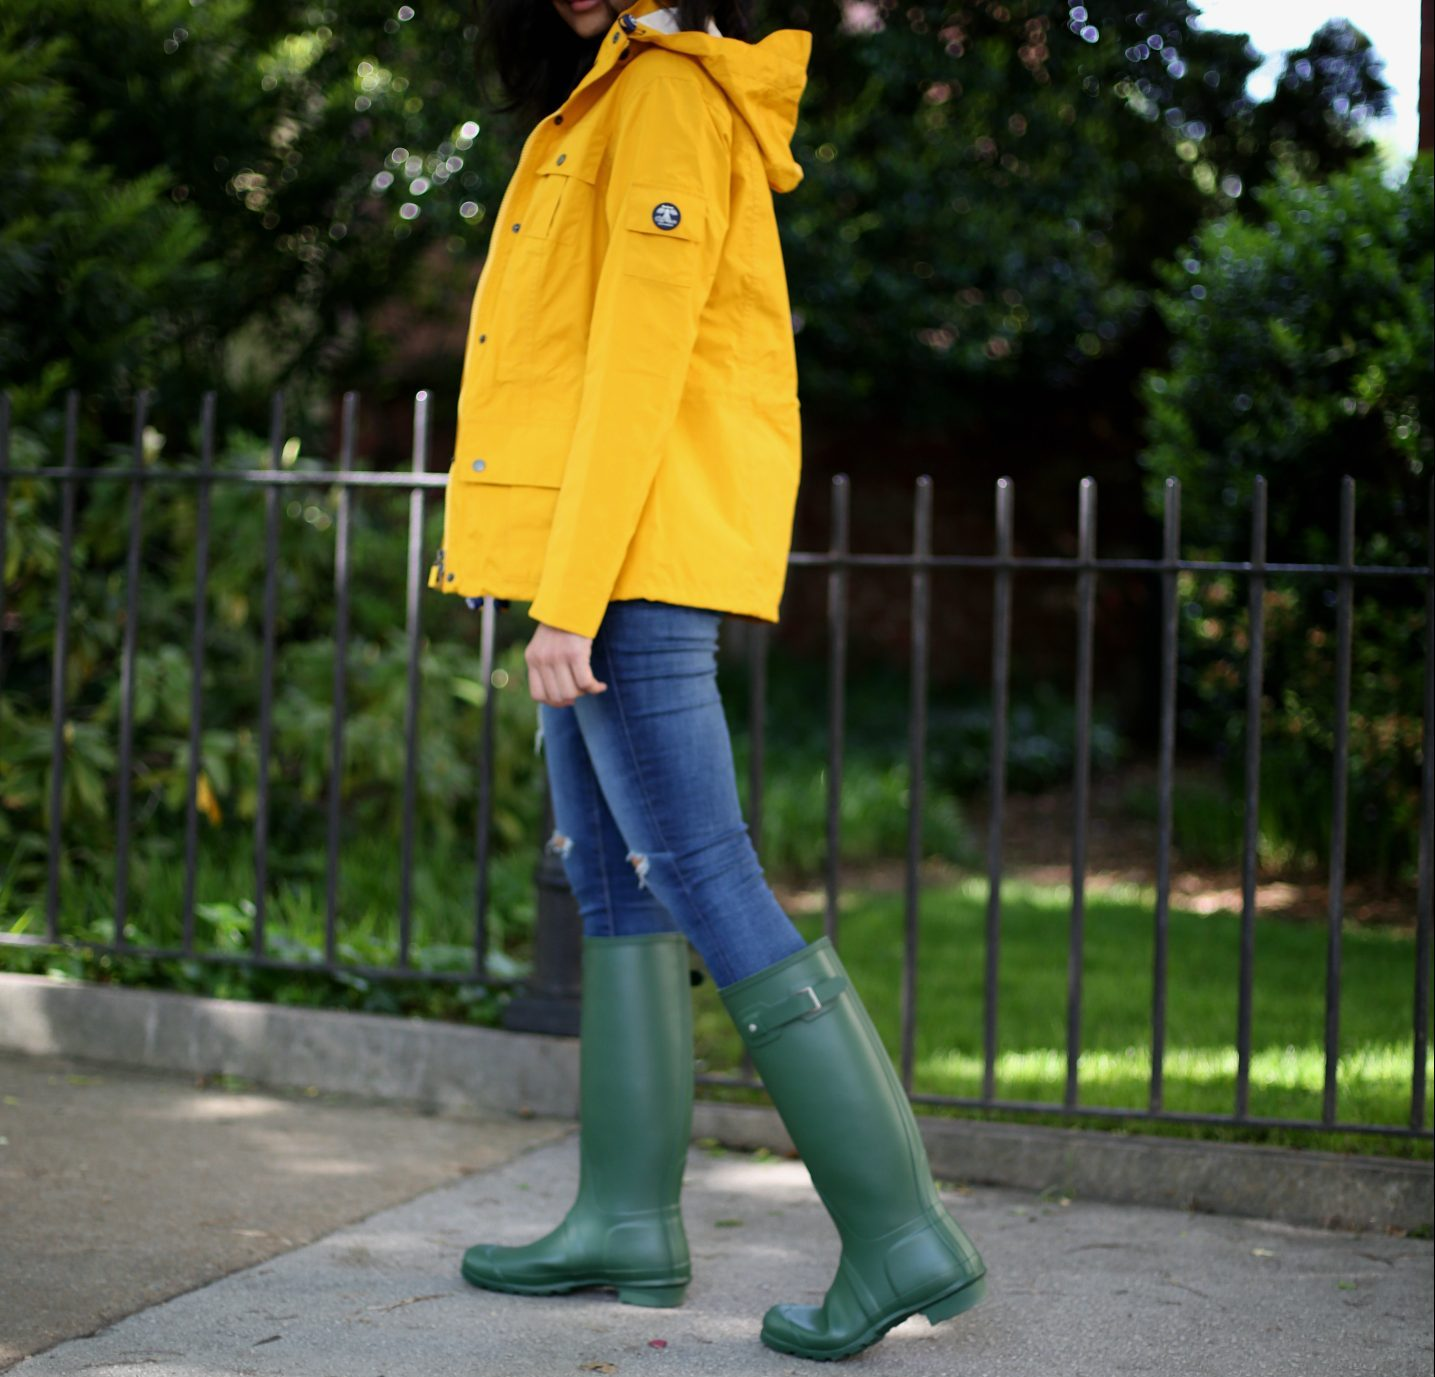 barbour-yellow-rain-jacket-dl | Lightweight Jackets by popular Maryland modest fashion blog, Dreaming Loud: image of a woman wearing a yellow rain jacket with jeans, and green knee high rain boots.